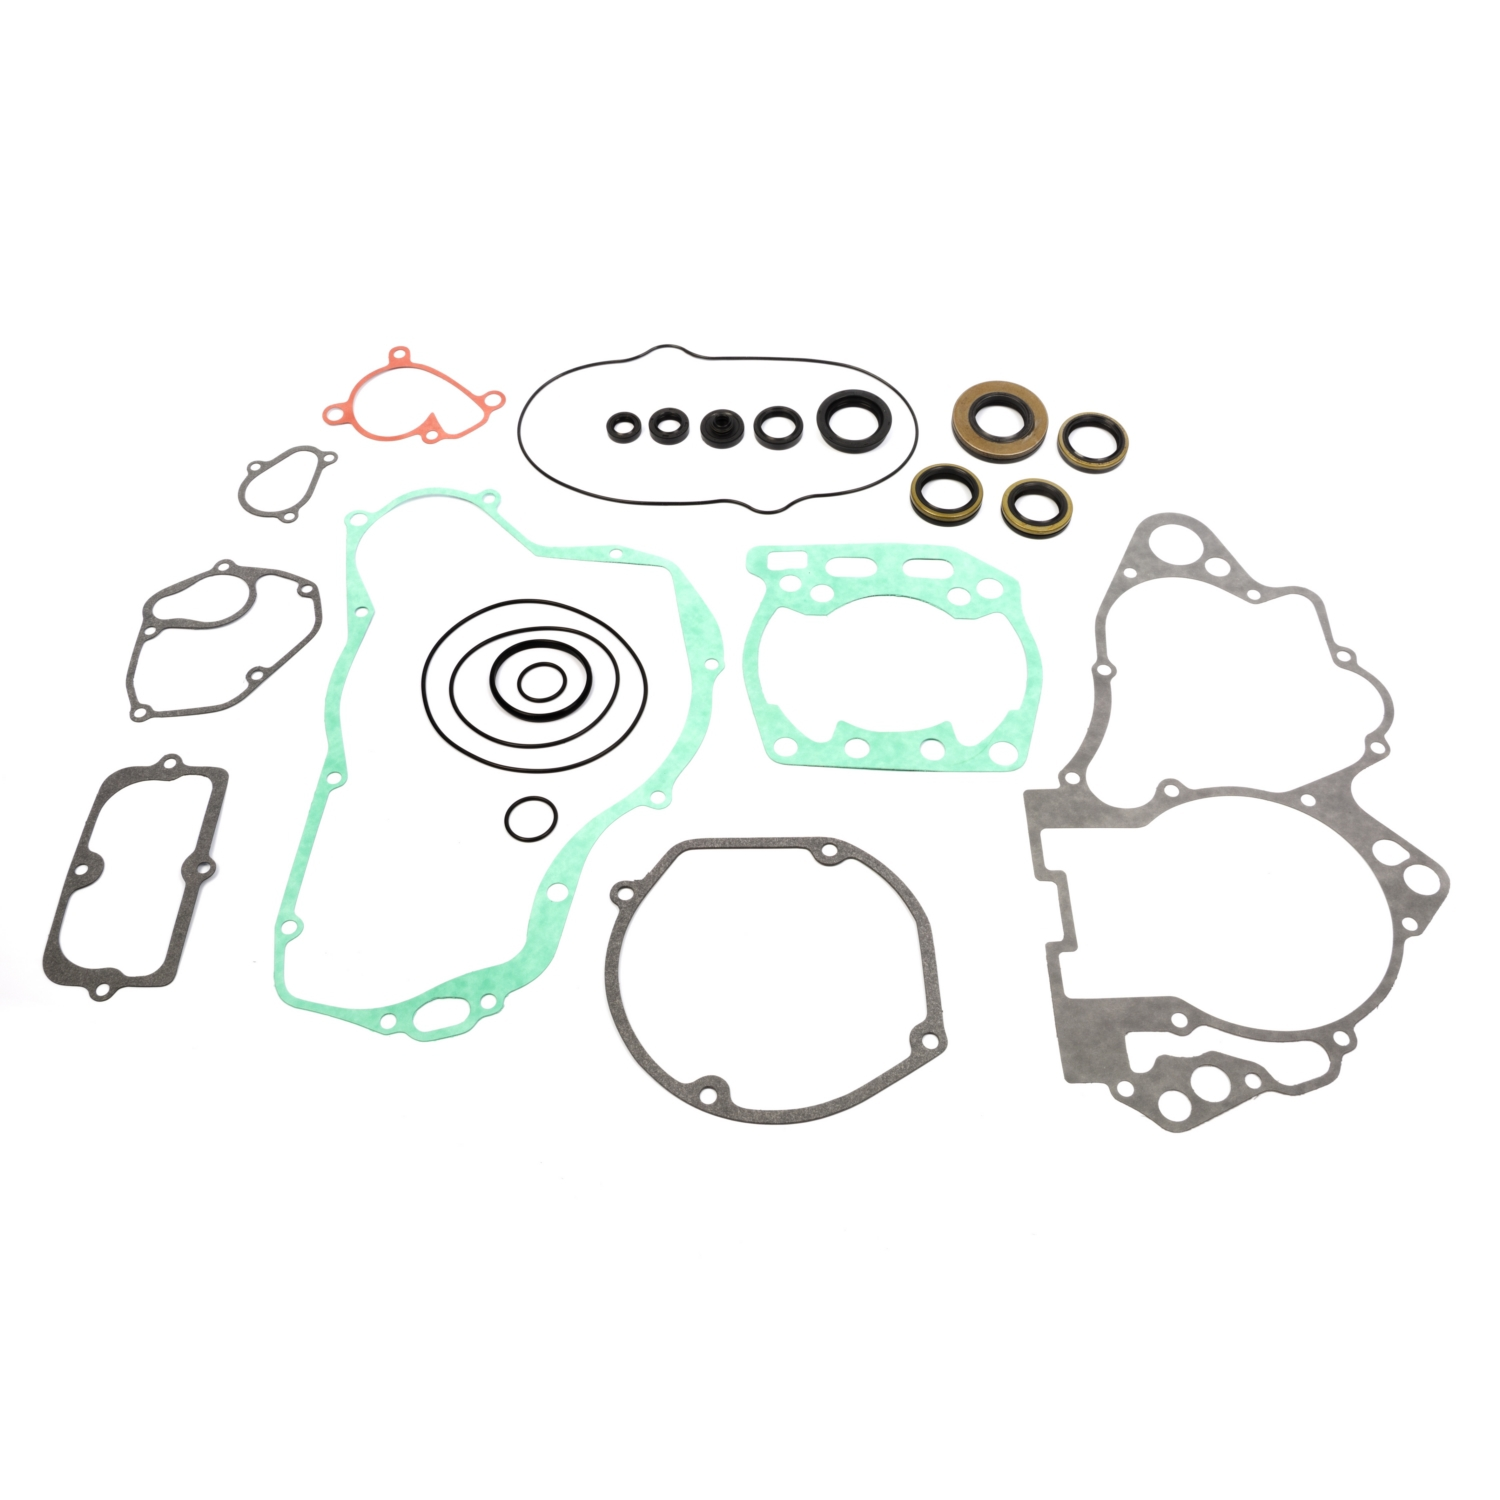 Winderosa Complete Gasket Sets with Oil Seals   #159708